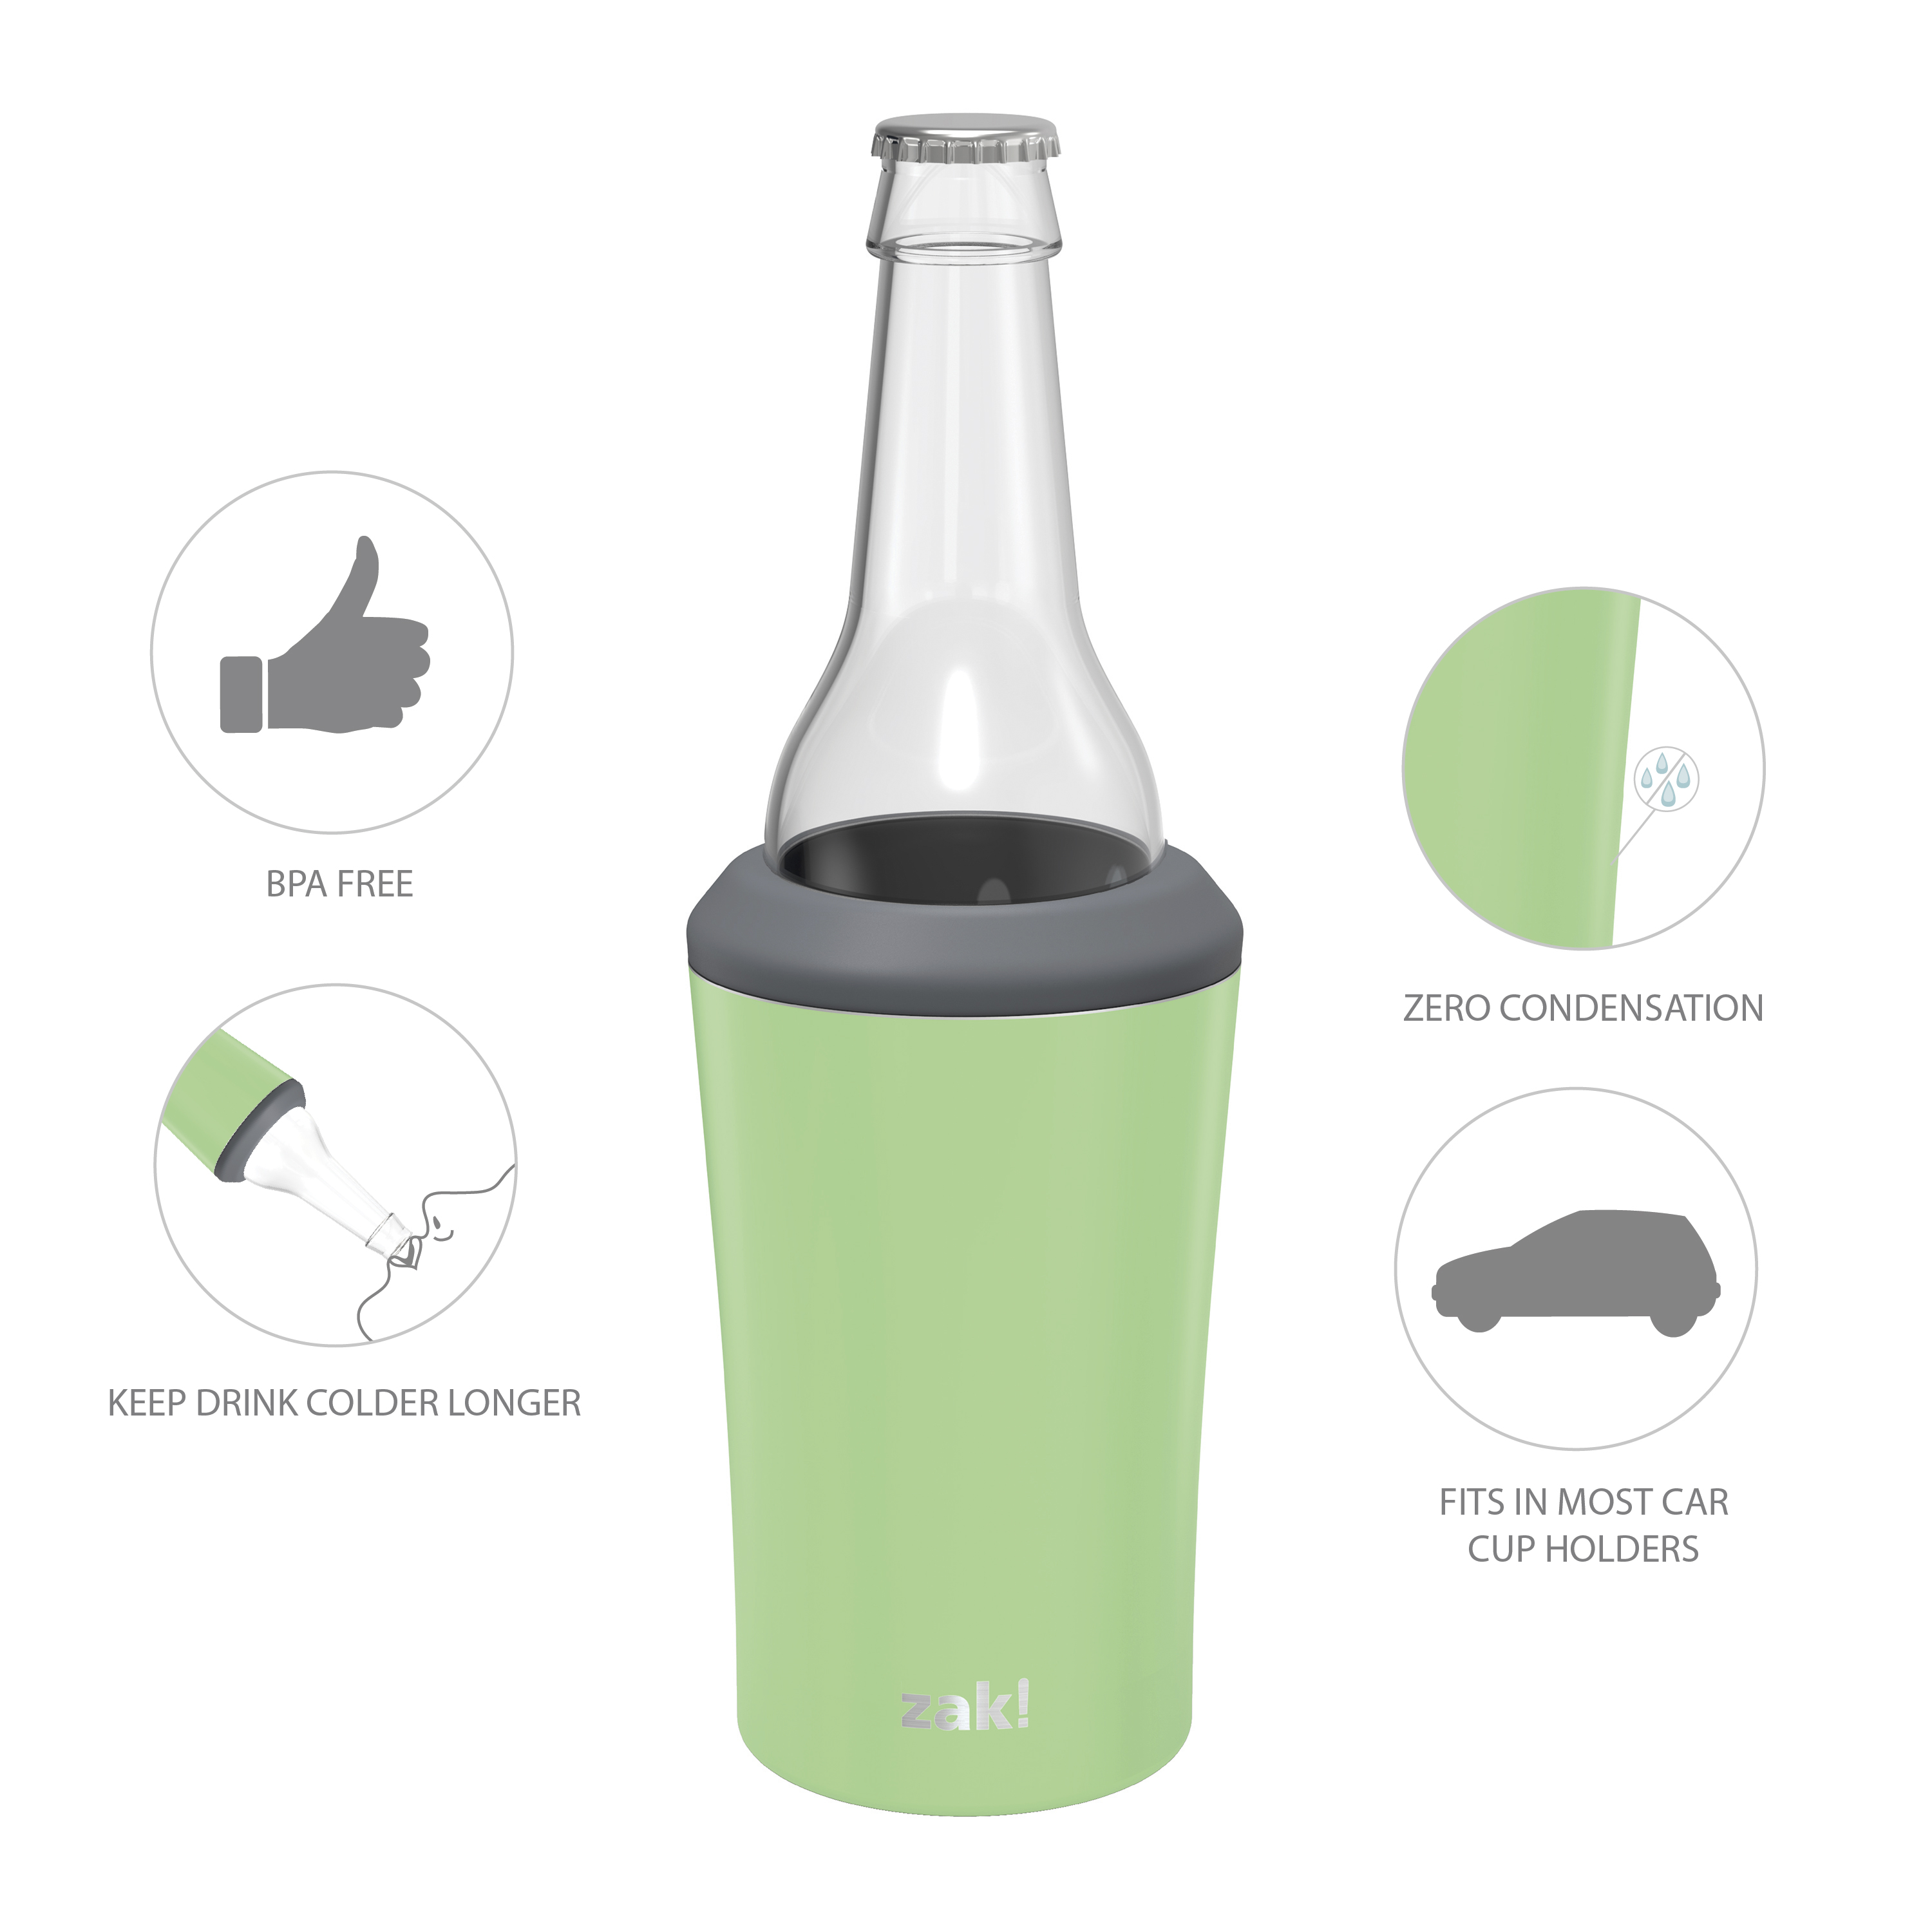 Zak Hydration 12 ounce Double Wall Stainless Steel Can and Bottle Cooler with Vacuum Insulation, Pistachio slideshow image 8